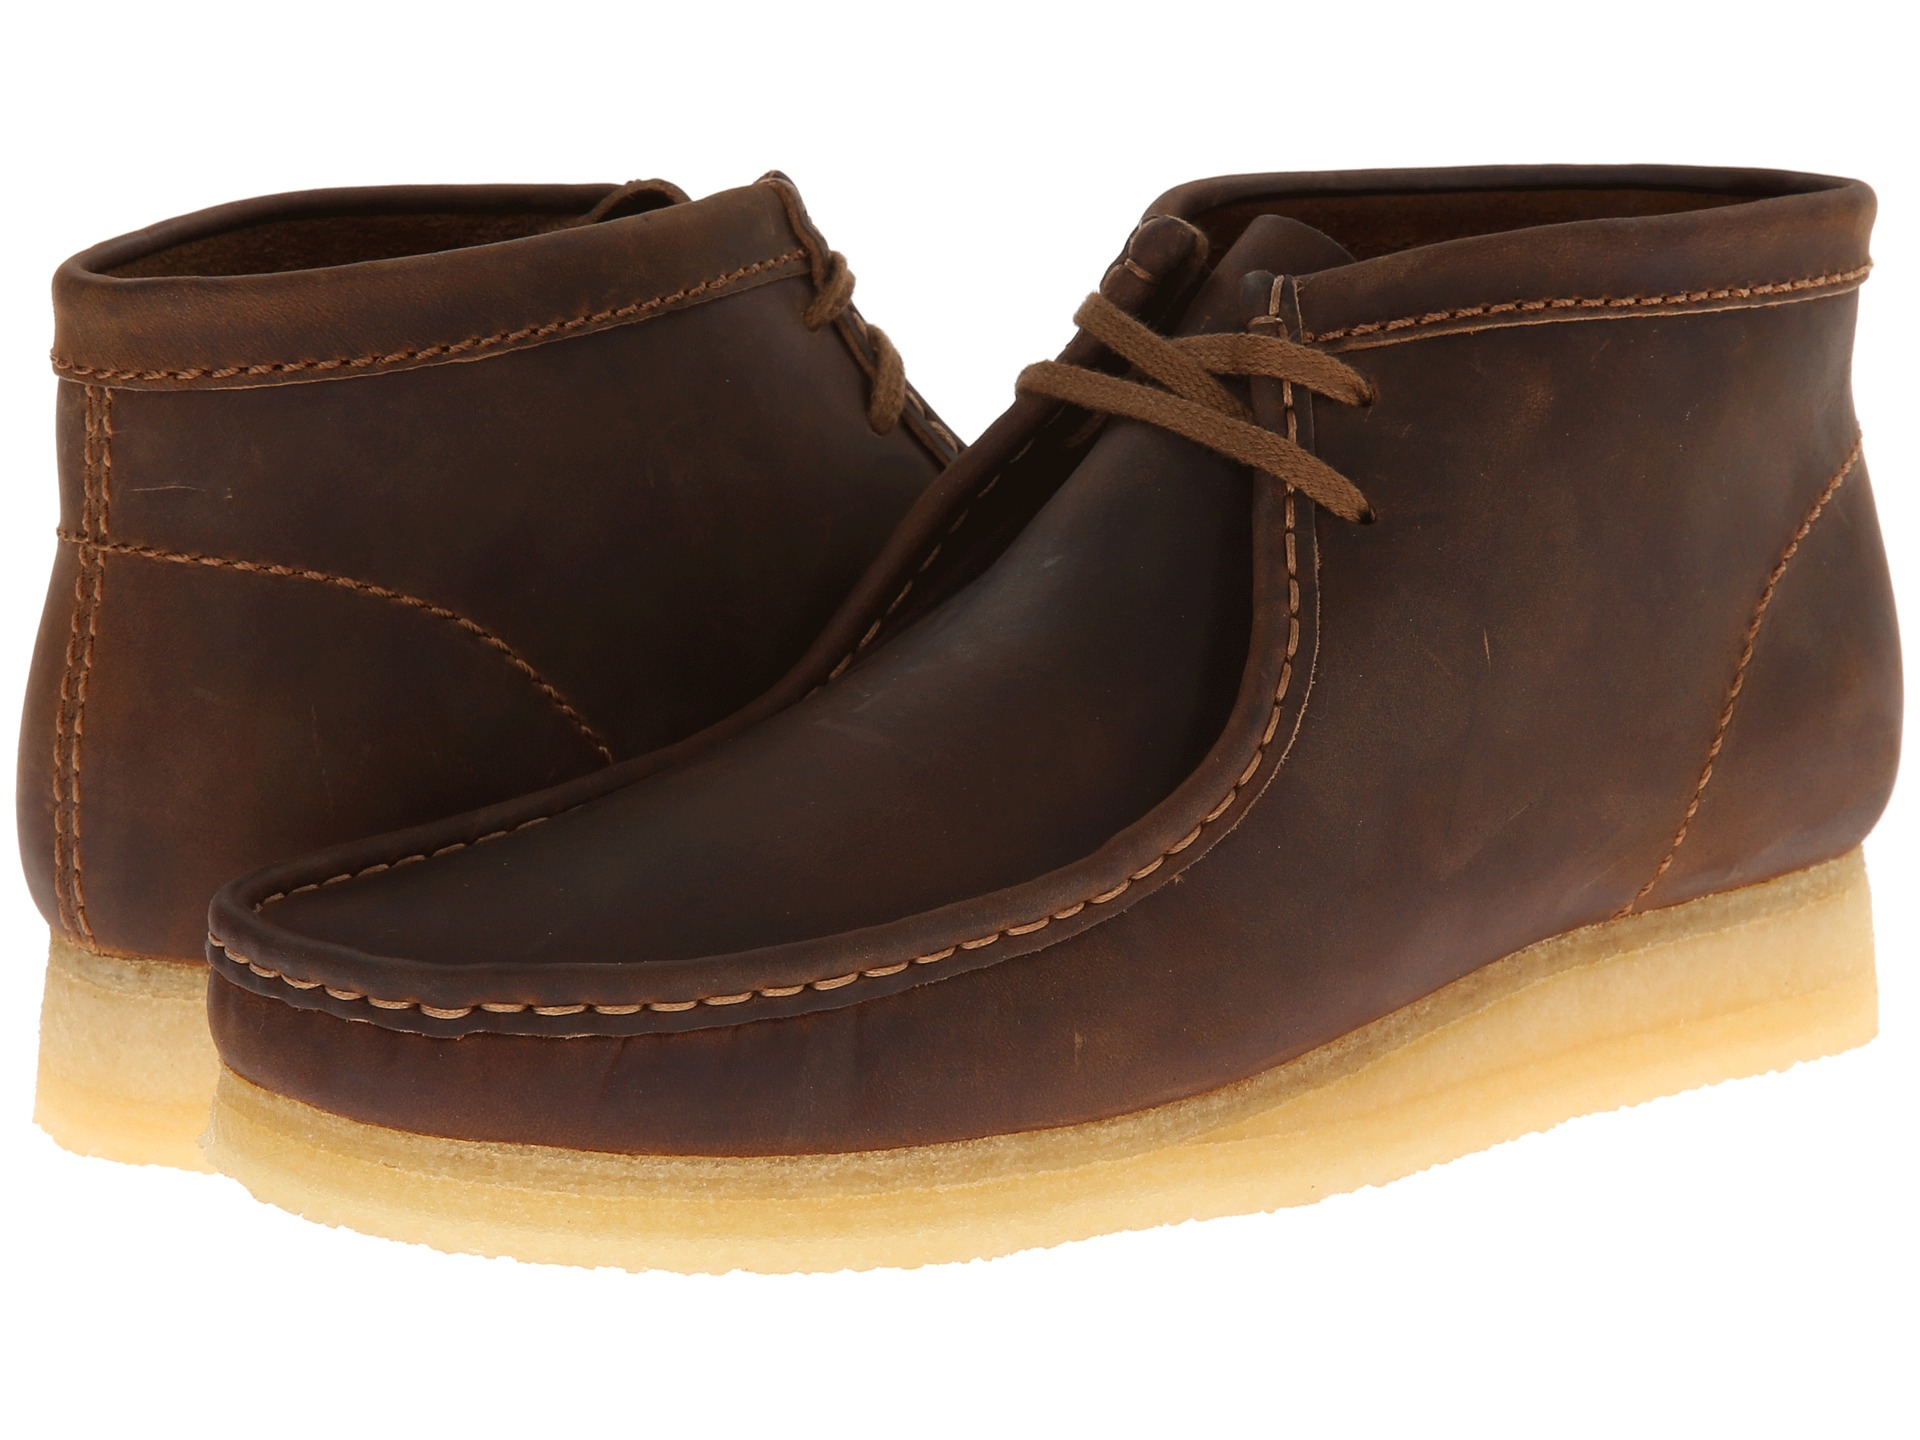 Clarks Wallabee Boot Zappos Com Free Shipping Both Ways